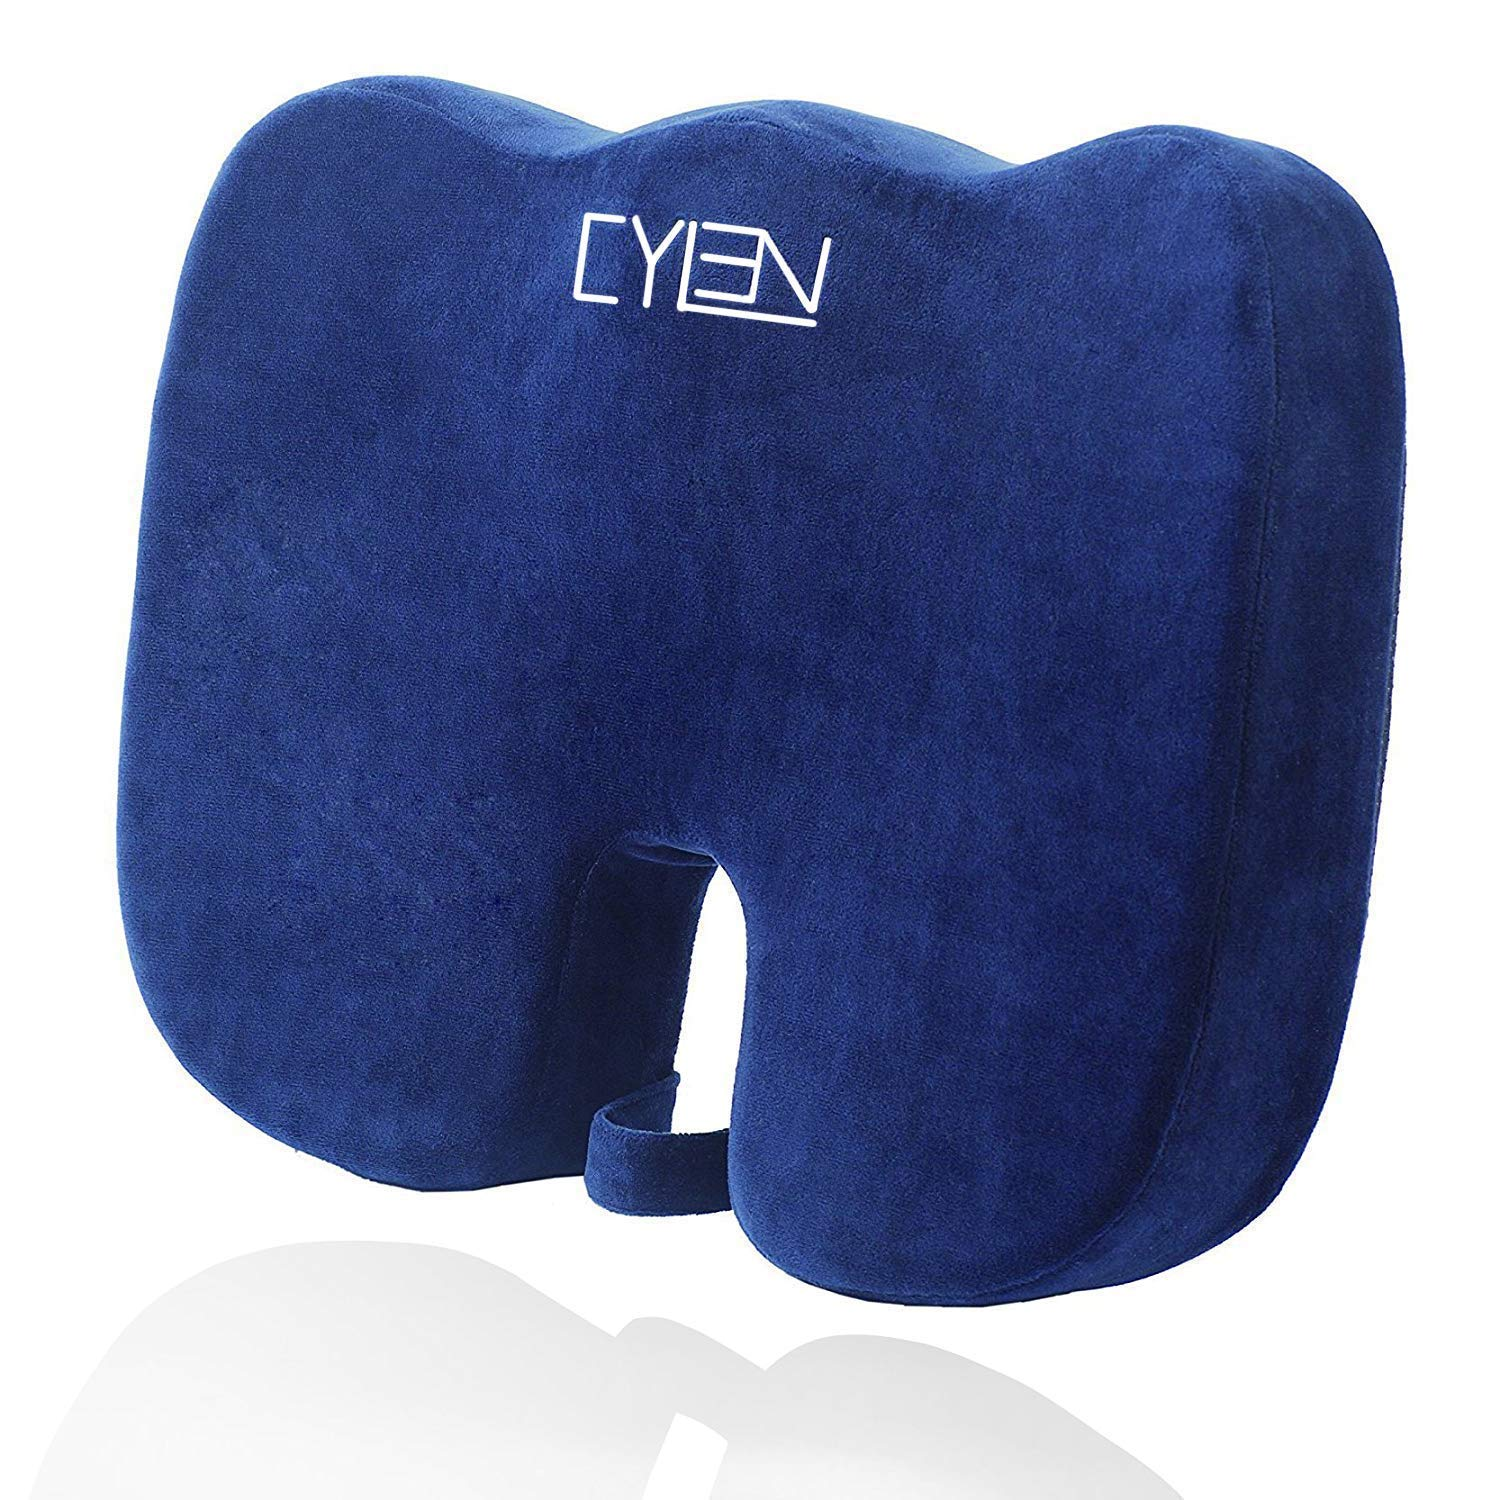 CYLEN Home-Memory Foam Bamboo Charcoal Infused Ventilated Orthopedic Seat Cushion for Car and Office Chair - Washable & Breathable Cover (Grayish Blue)